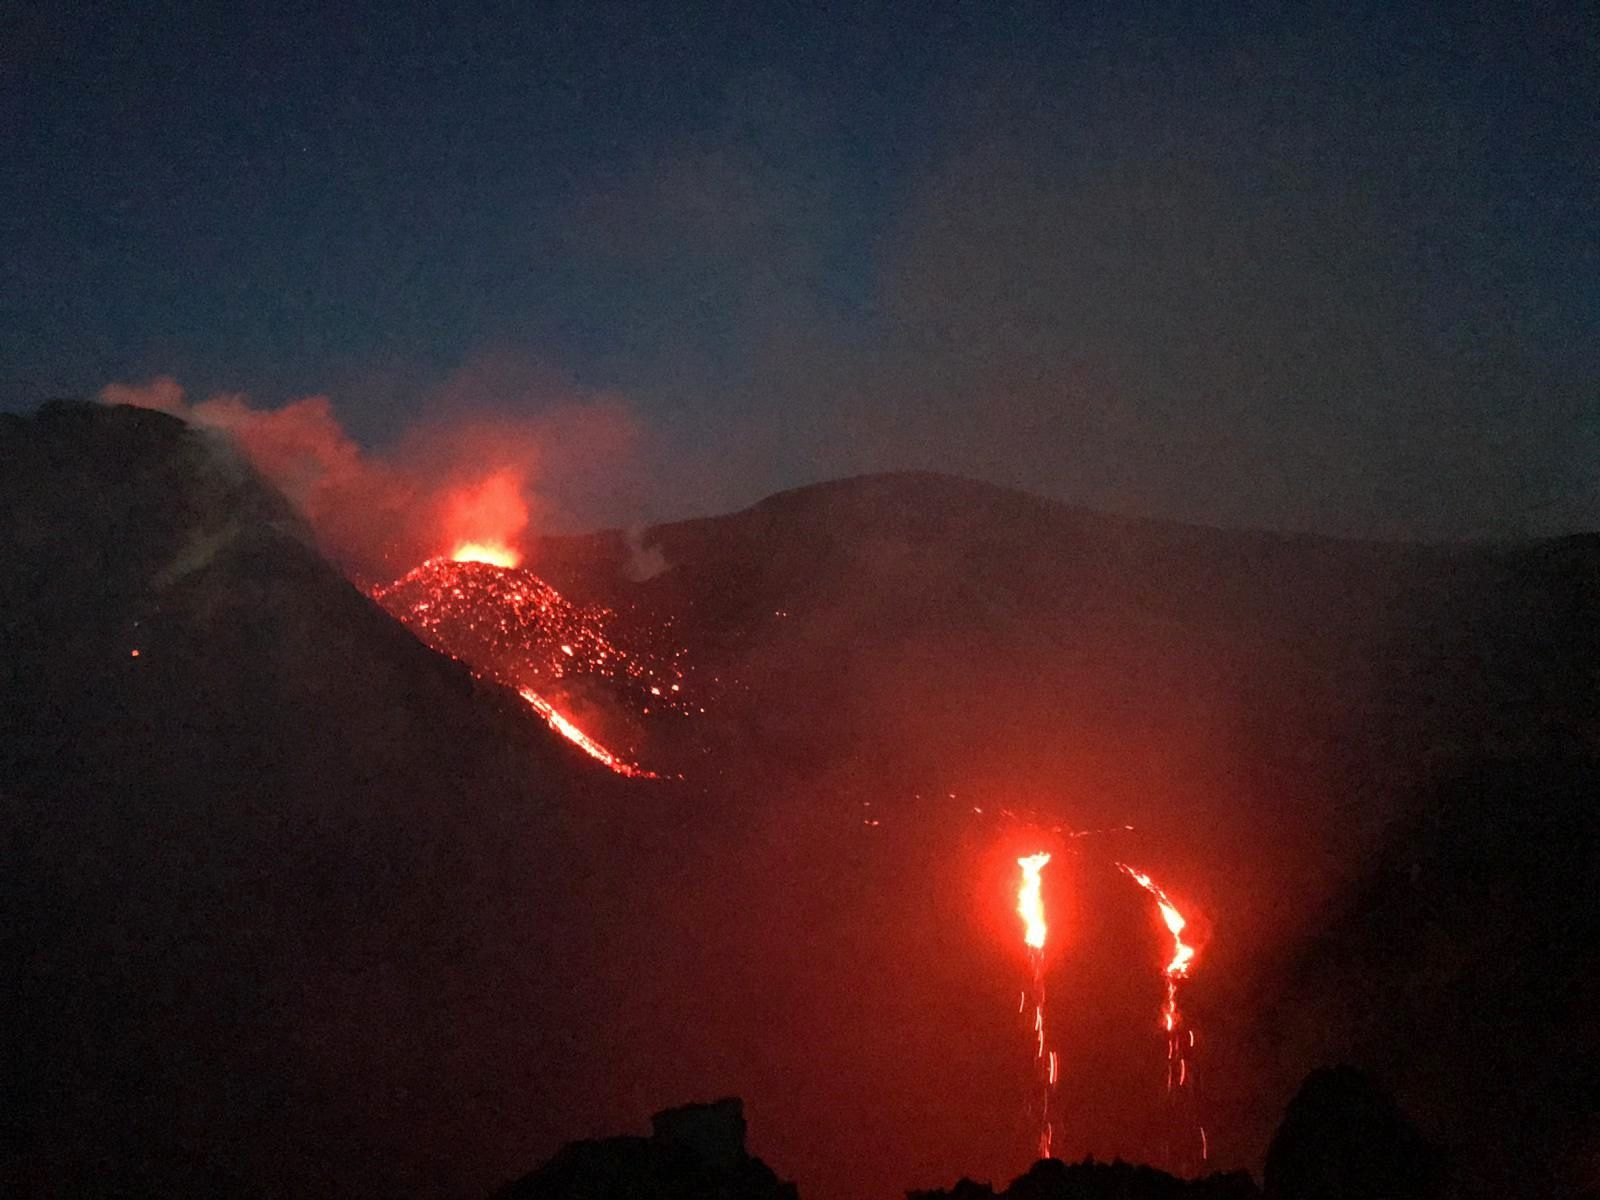 Etna - activity of the Voragine and lava flow towards the Bocca Nuova on 18.09.2019 -.Photos by volcanological guide Marco Tomasello, via Boris Behncke